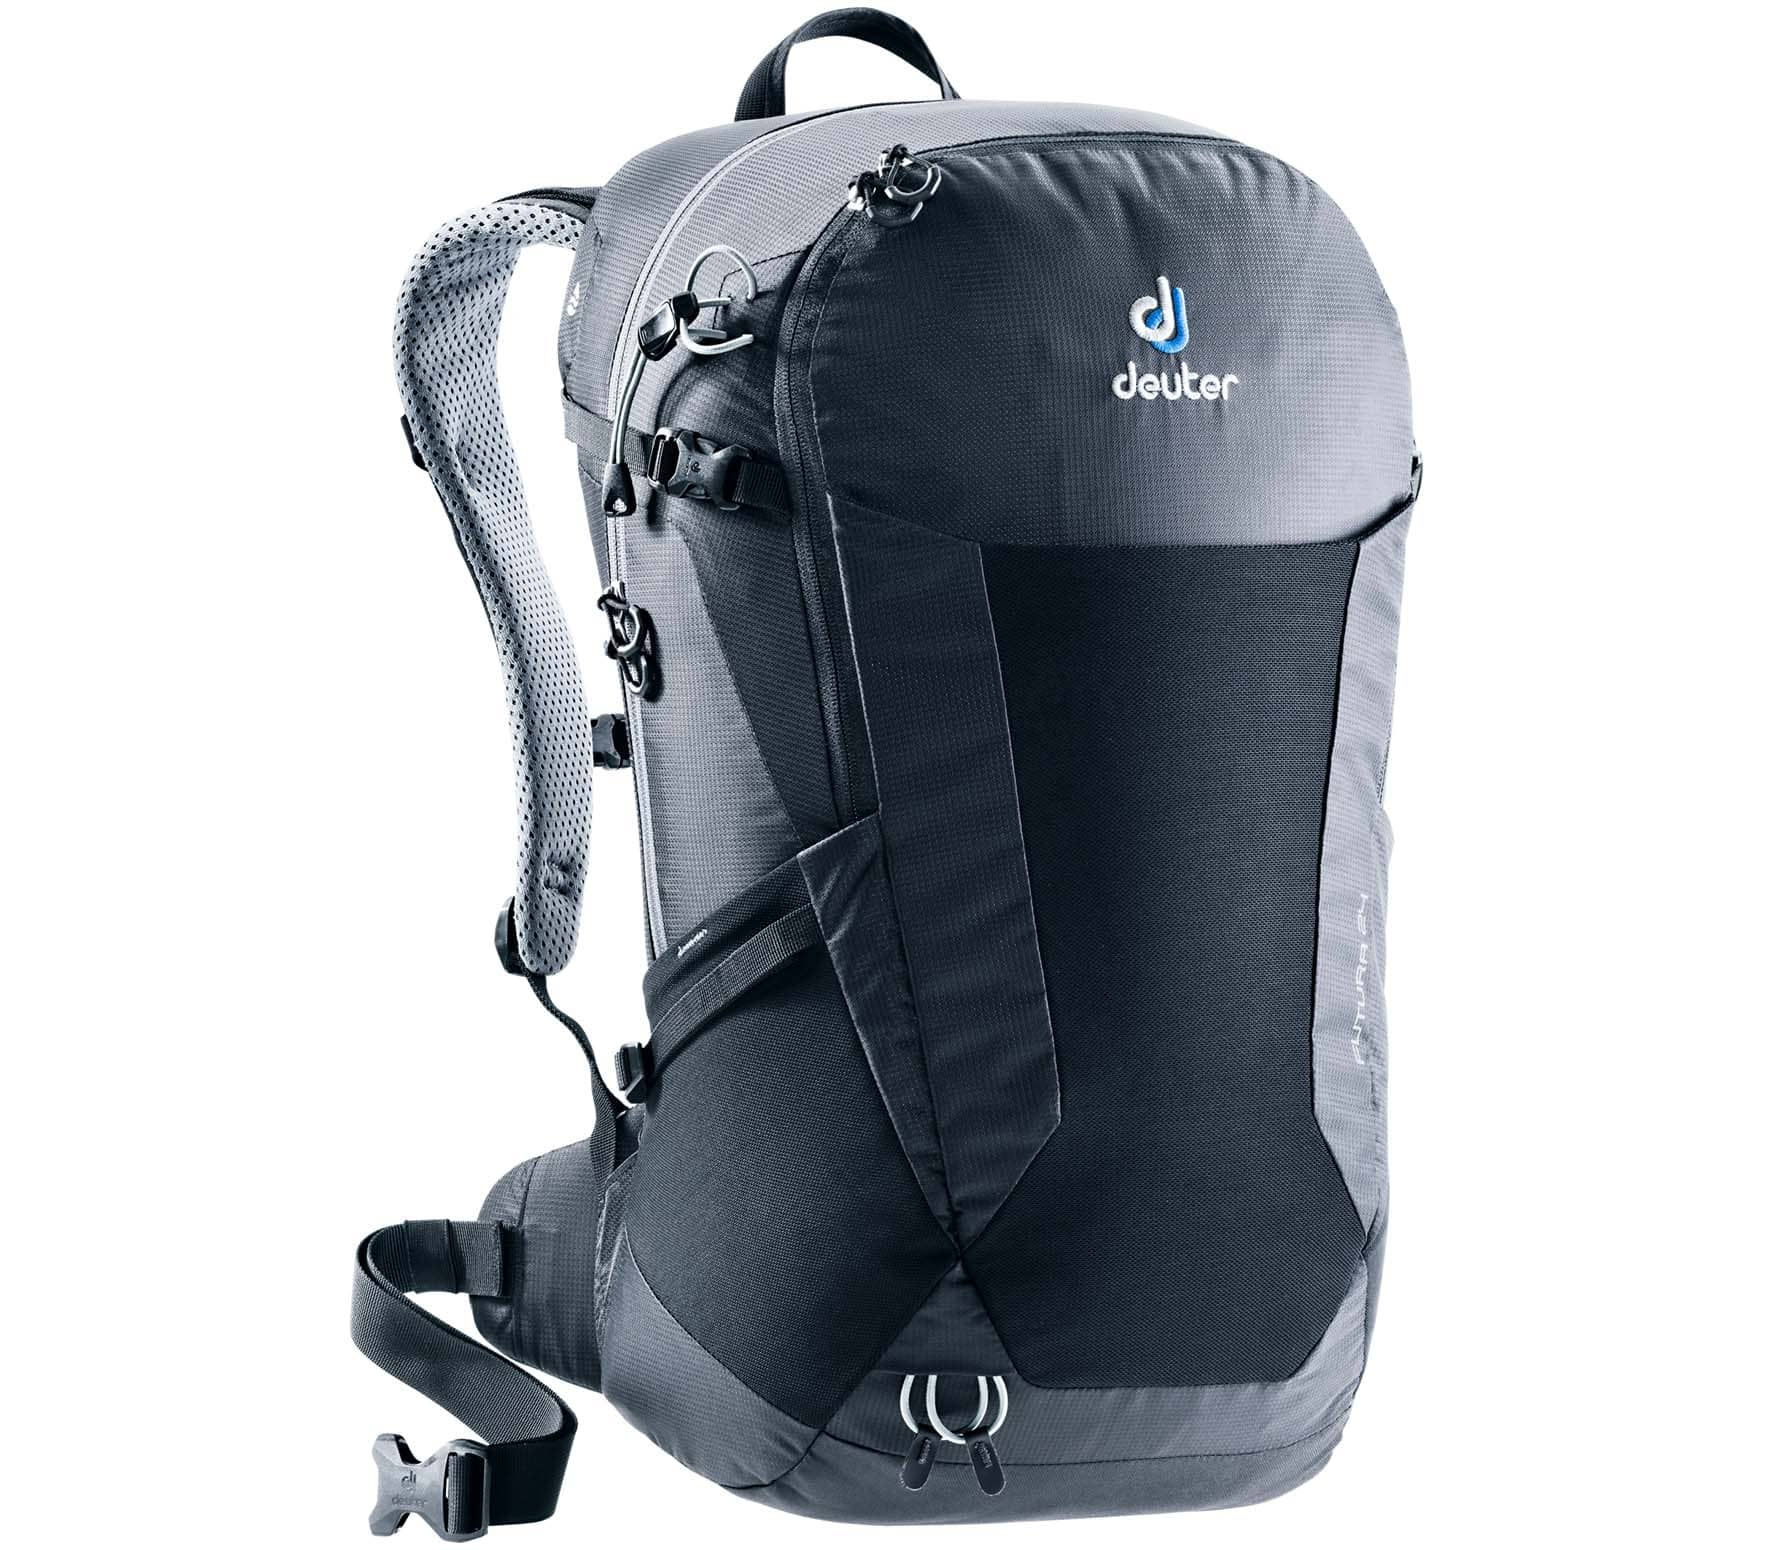 Deuter - Futura 24 hiking backpack (black)